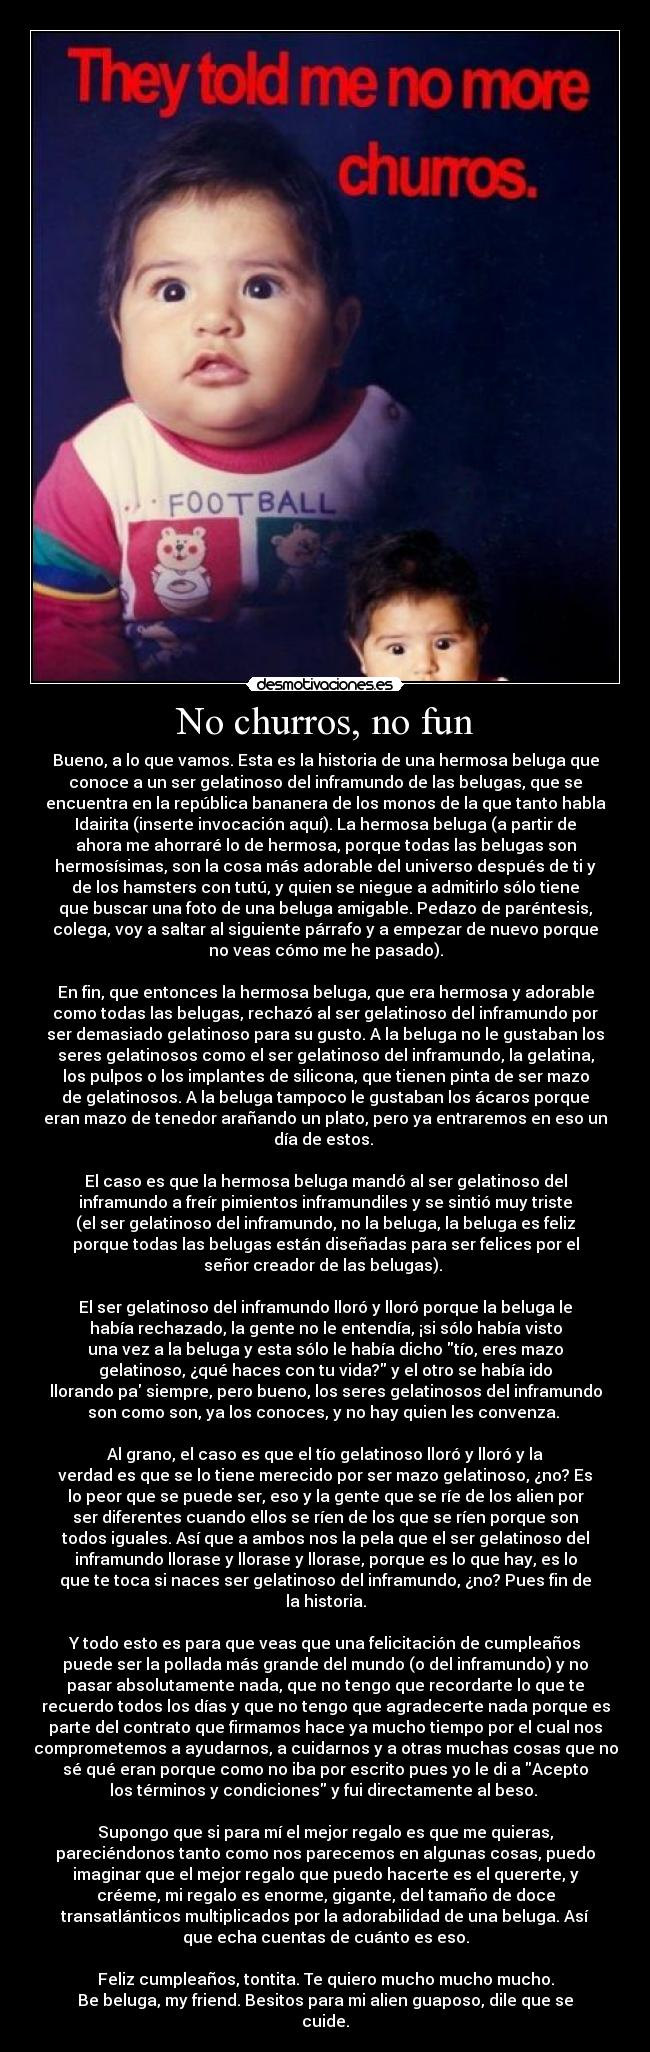 No churros, no fun - Bueno, a lo que vamos. Esta es la historia de una hermosa beluga que